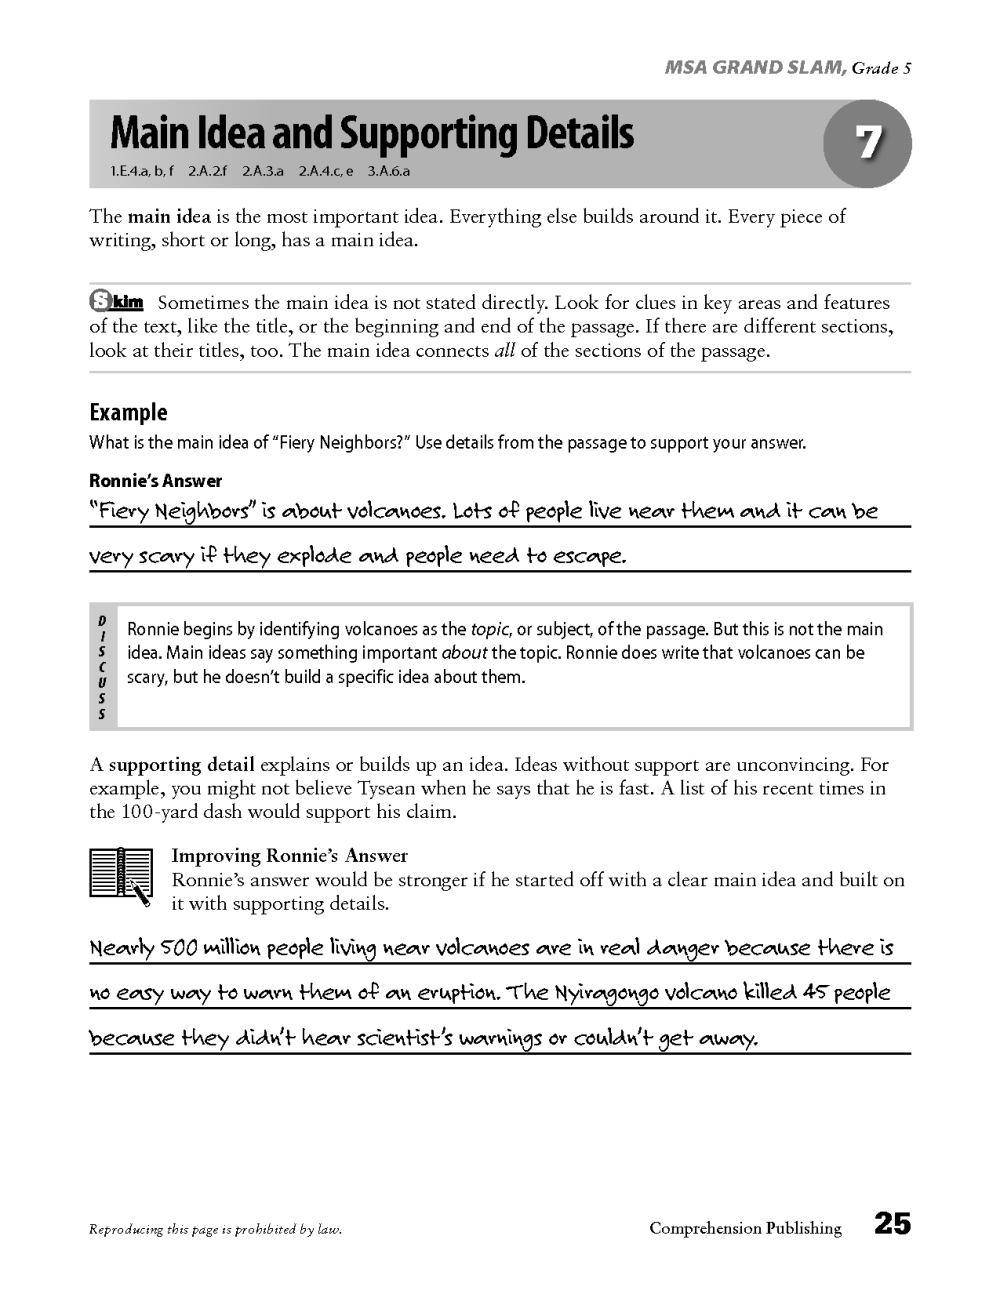 medium resolution of 10 Best Images Of Main Idea Worksheets Main Idea Worksheet Main Idea on  Best Worksheets Collection 4779